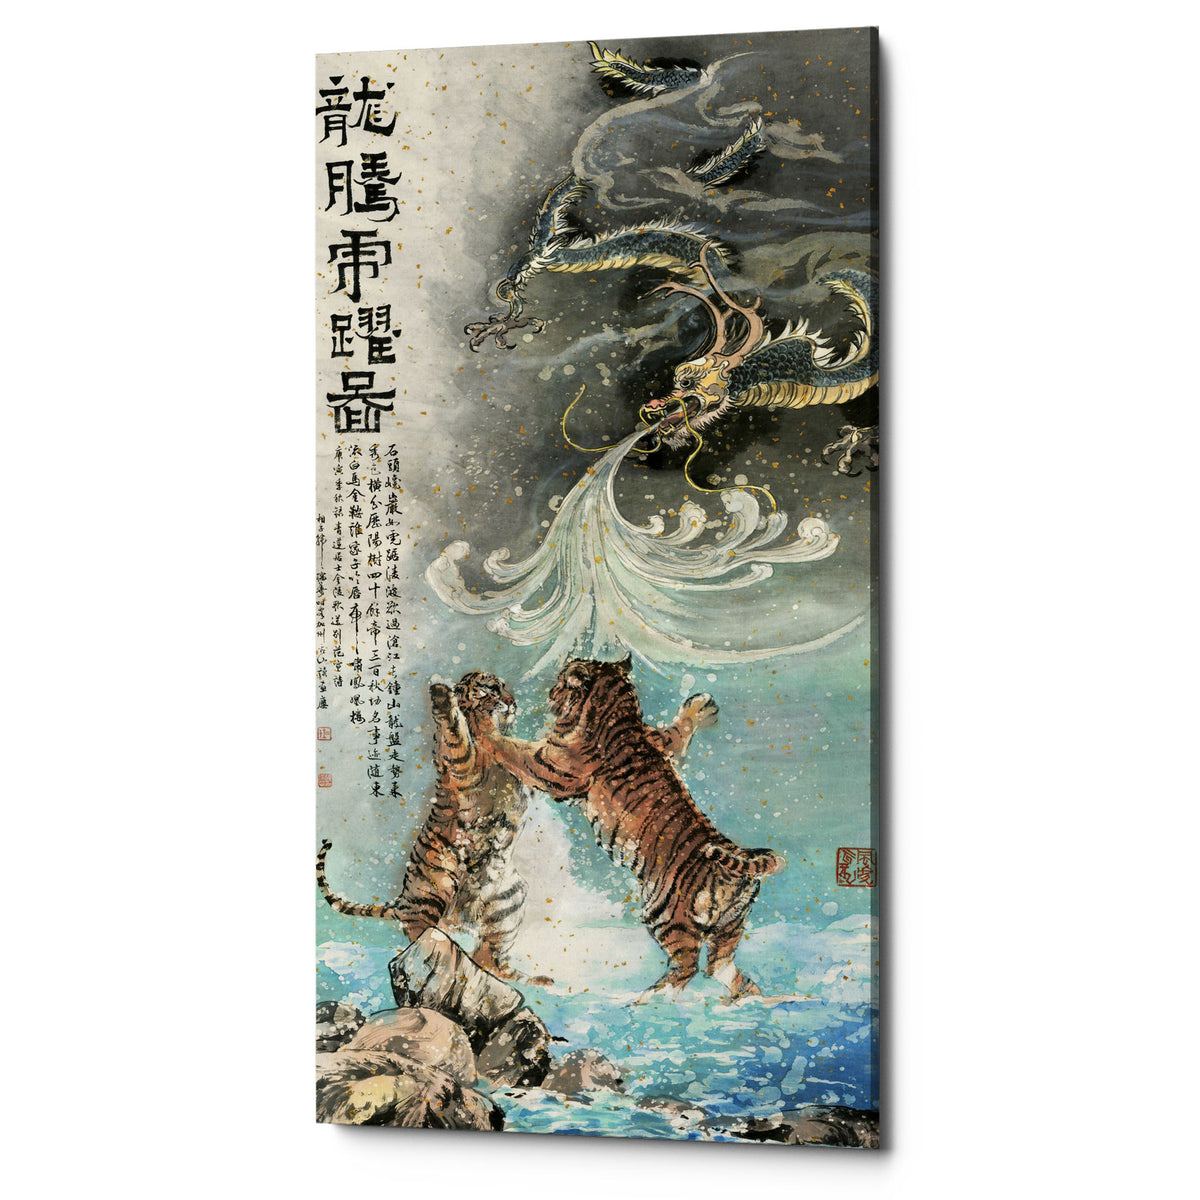 "Epic Graffiti ""Fly Like a Dragon, Jump Like a Tiger"" by River Han, Giclee Canvas Wall Art"